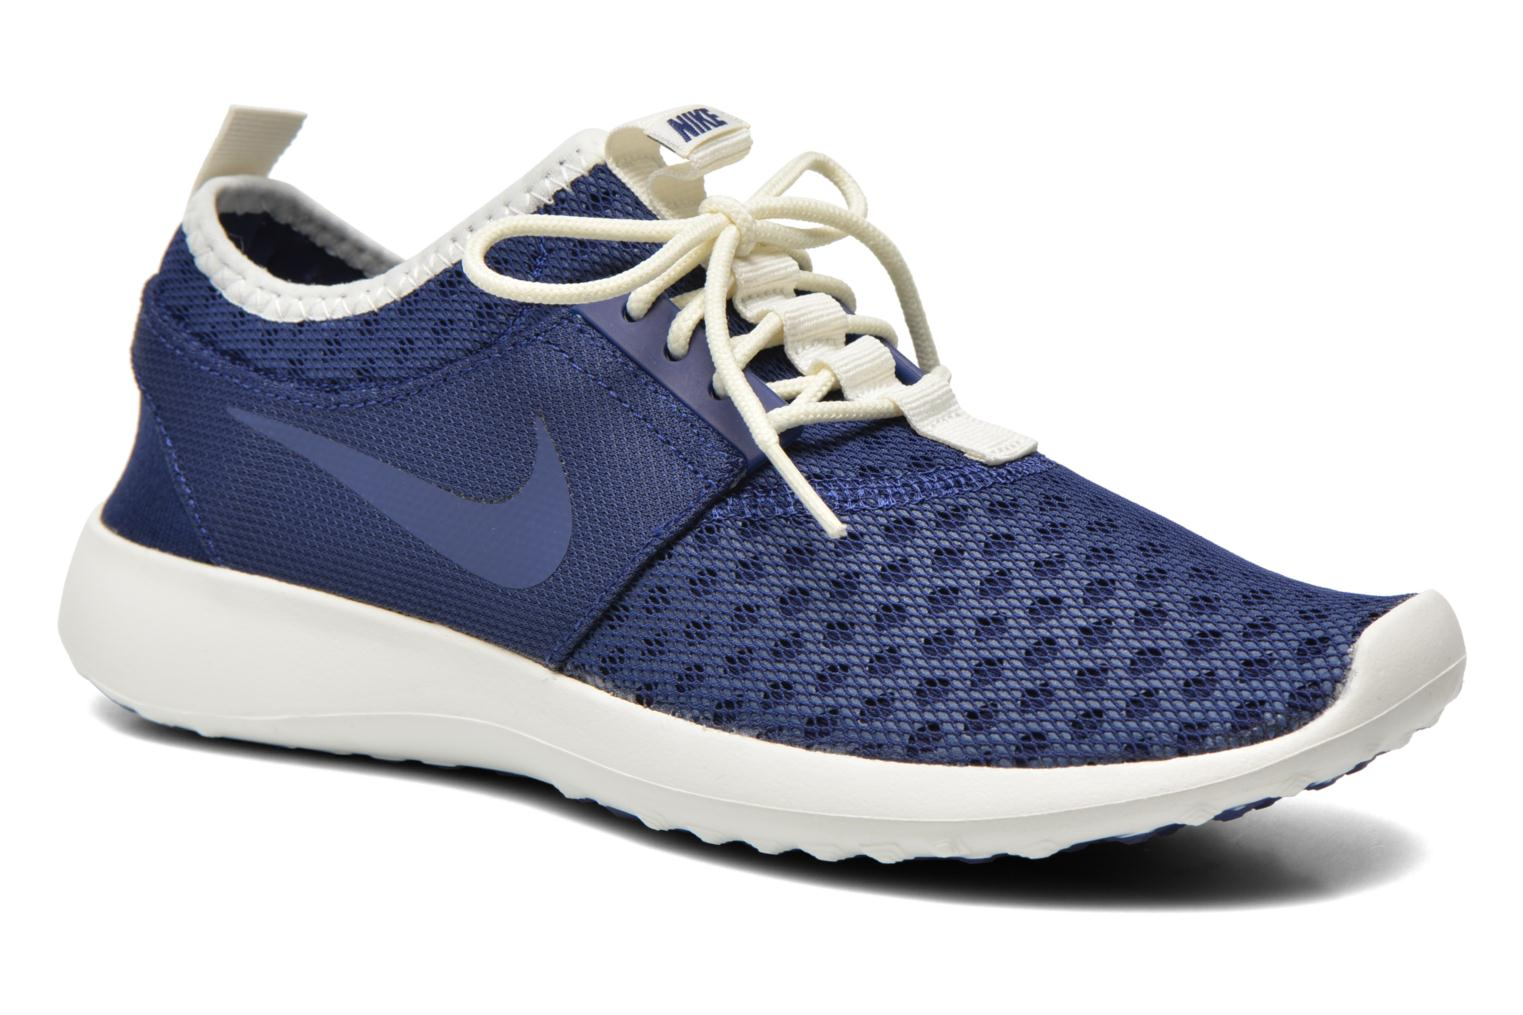 Nike Juvenate Loyal Blue/Loyal Blue-Sail